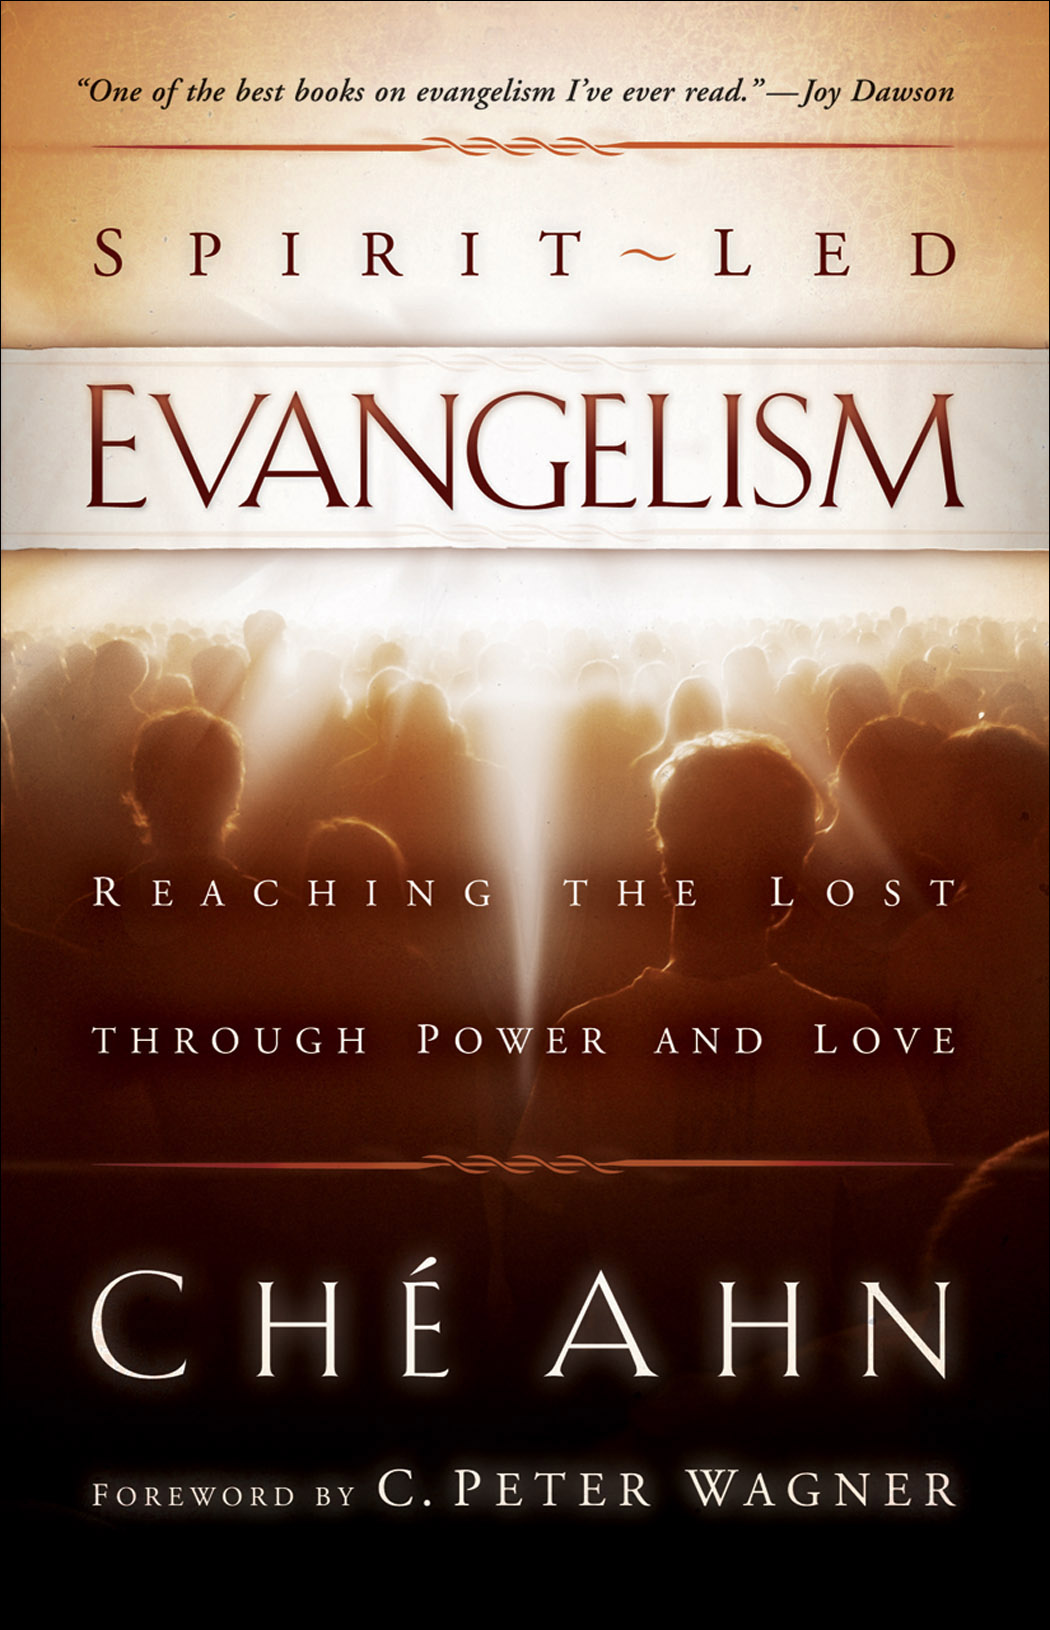 Dating evangelism